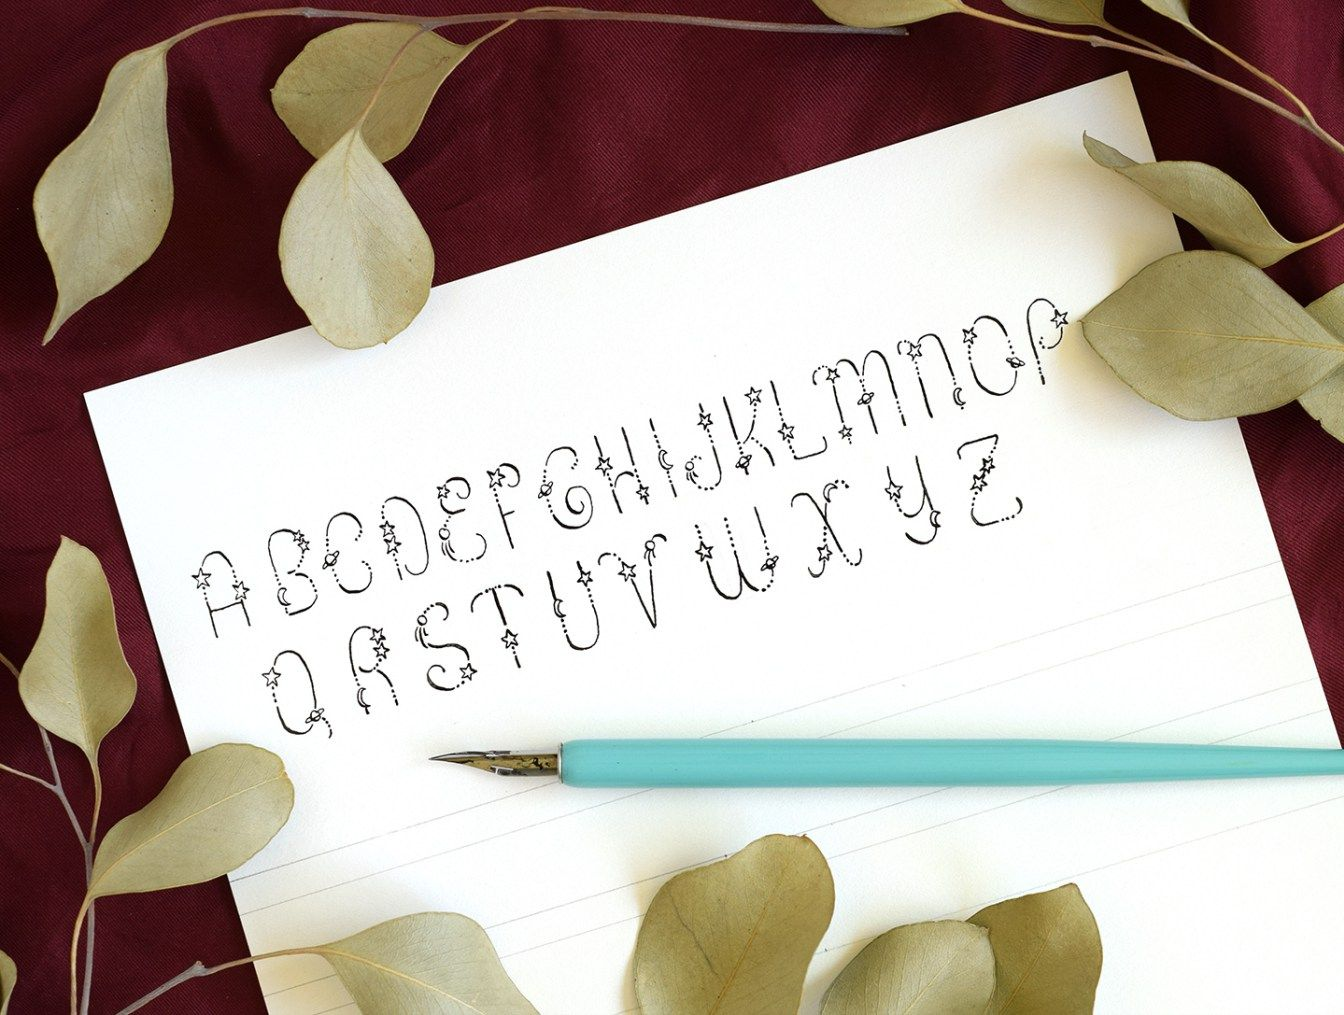 How To Develop An Artistic Hand Lettering Style